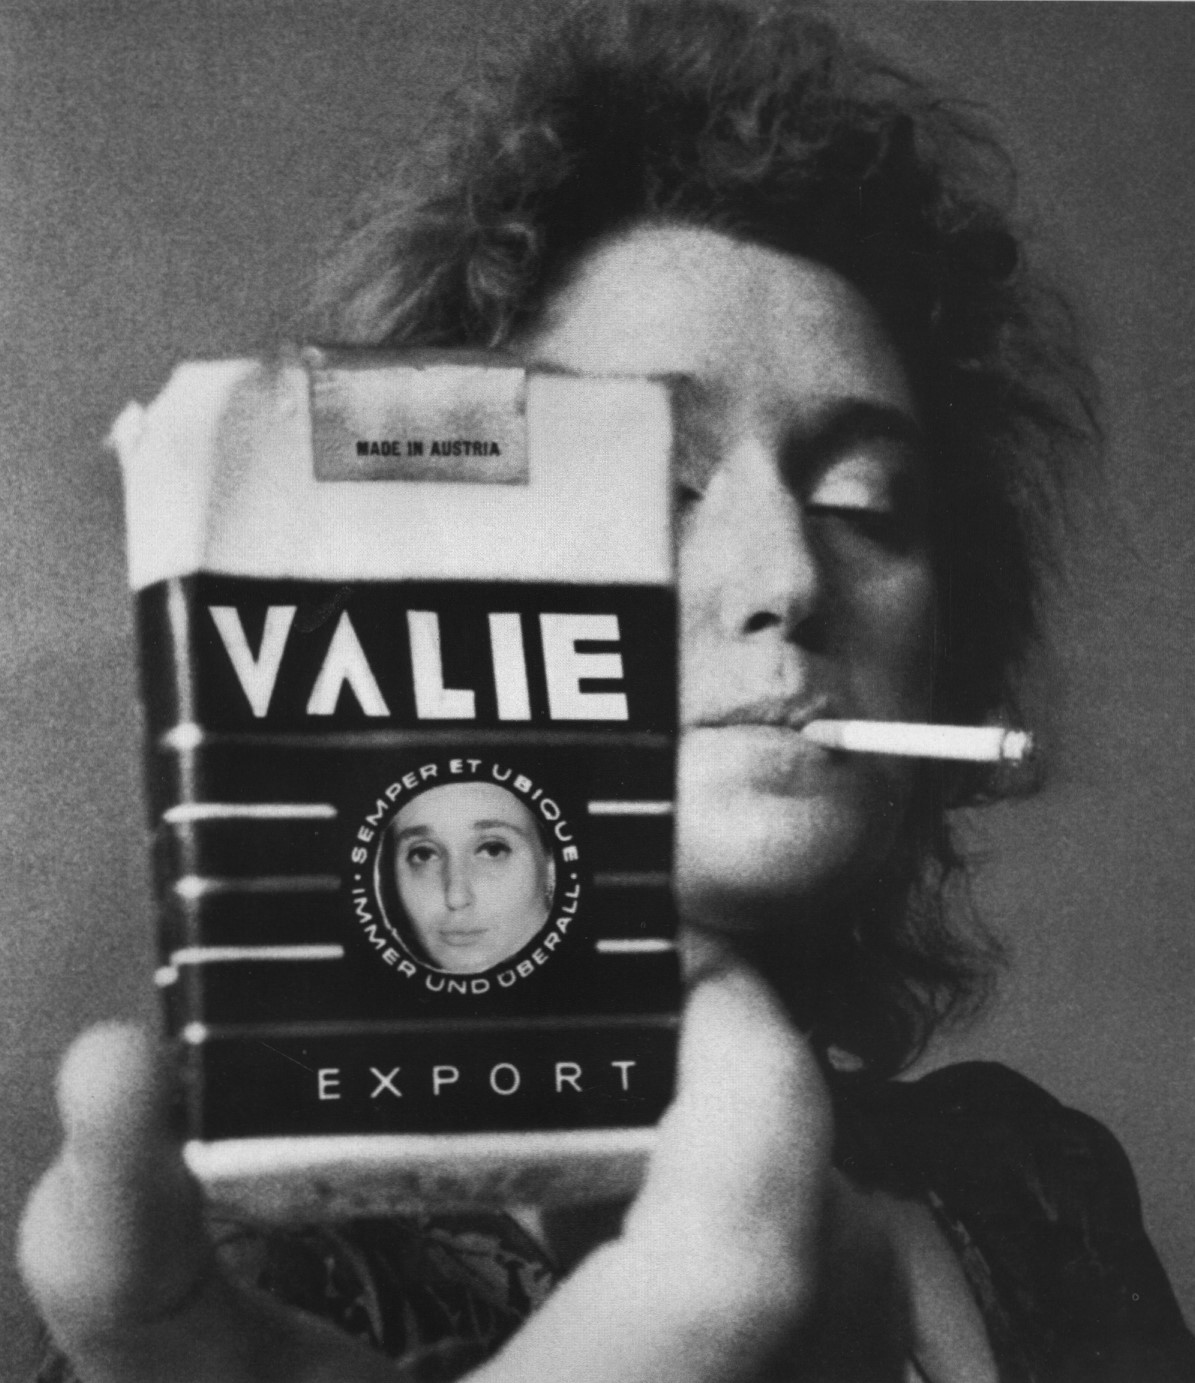 valie export self portrait transfer identity 1967 1970